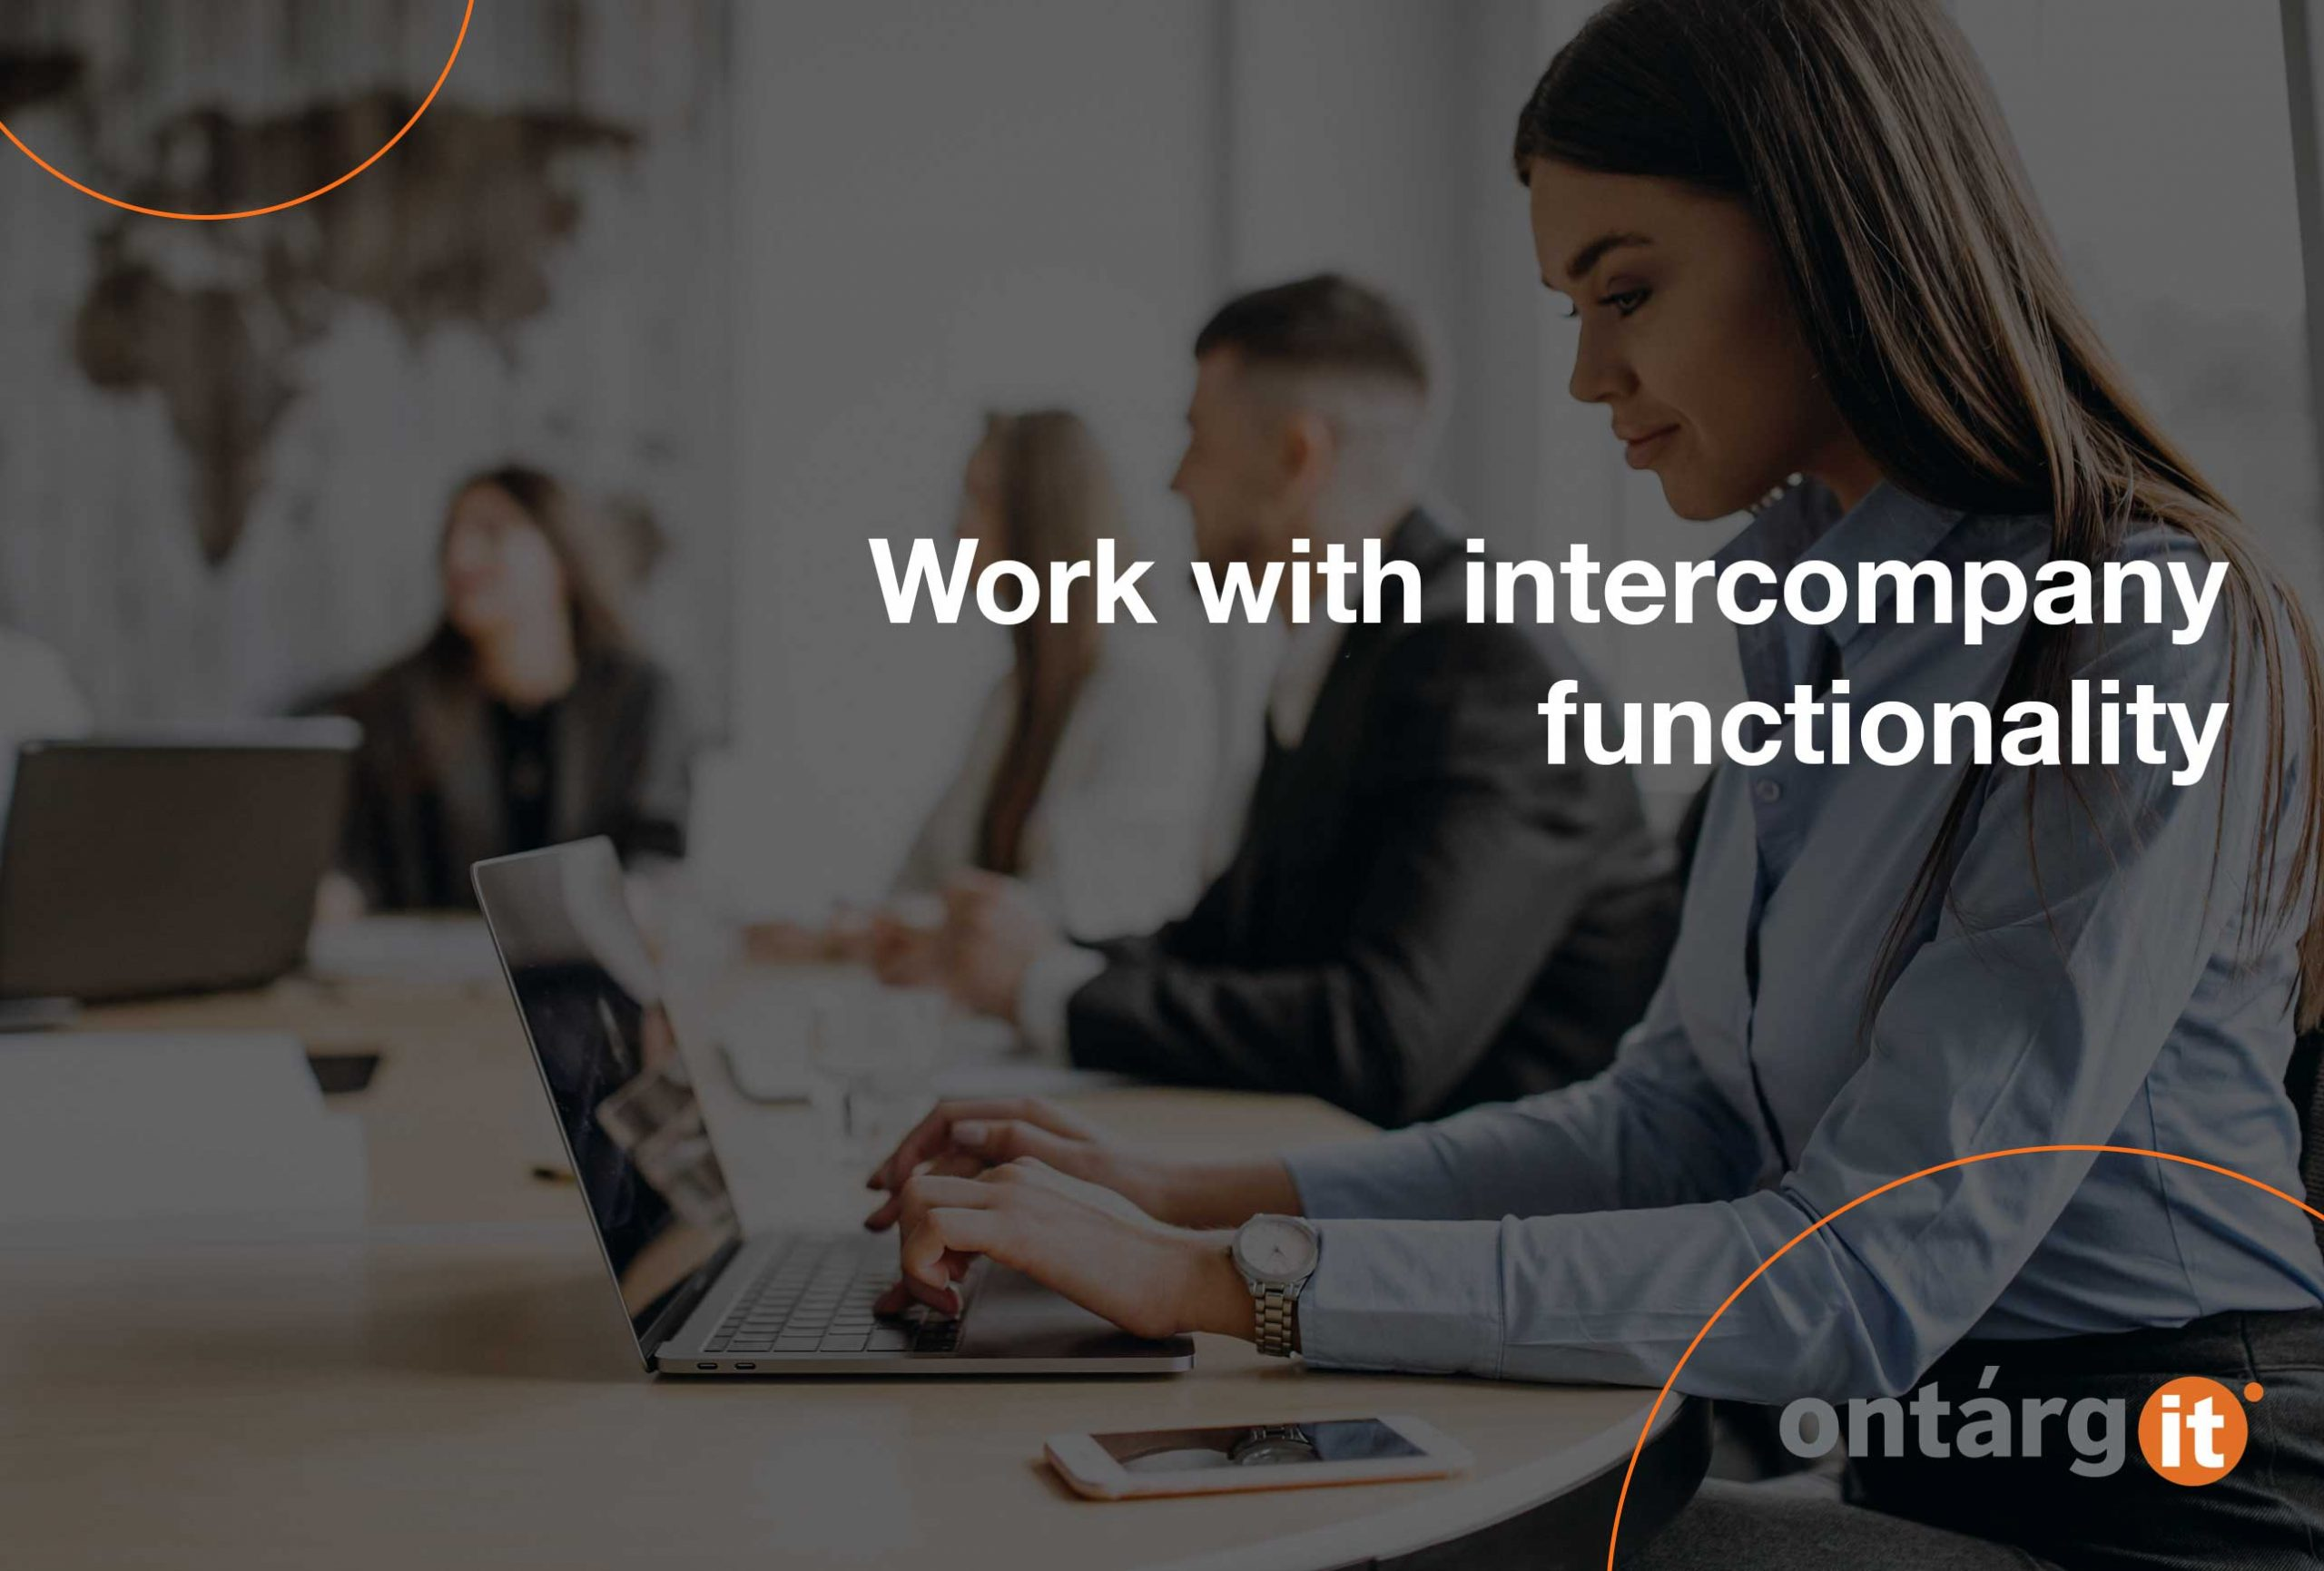 Work with intercompany functionality